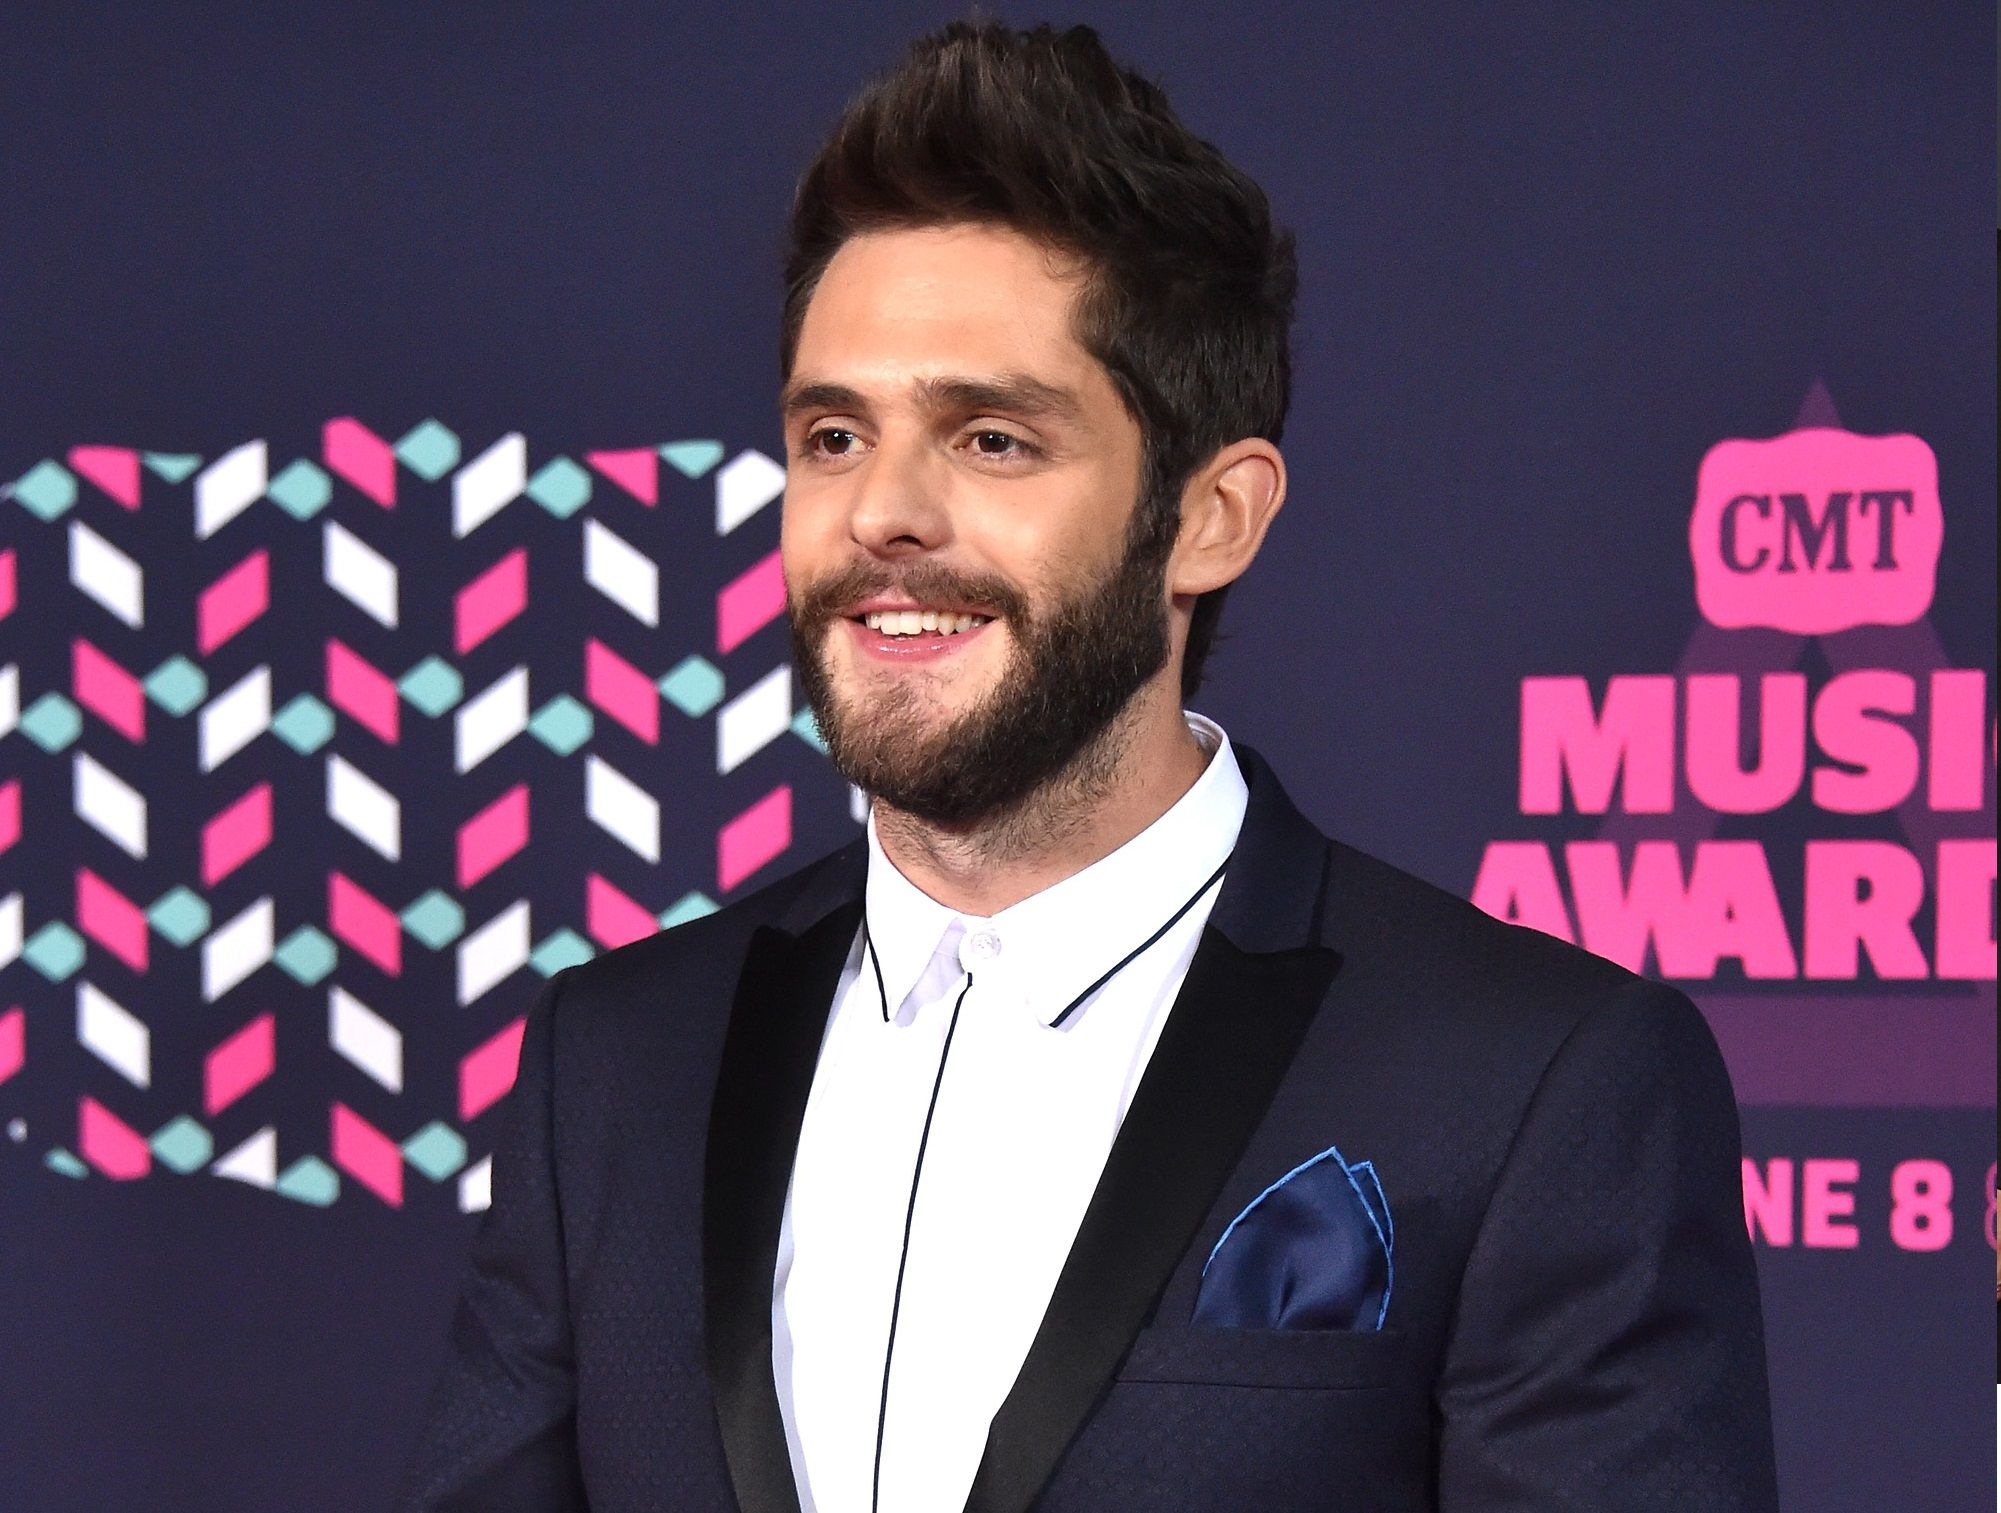 Thomas Rhett Takes Home Male Video of the Year at CMT Awards